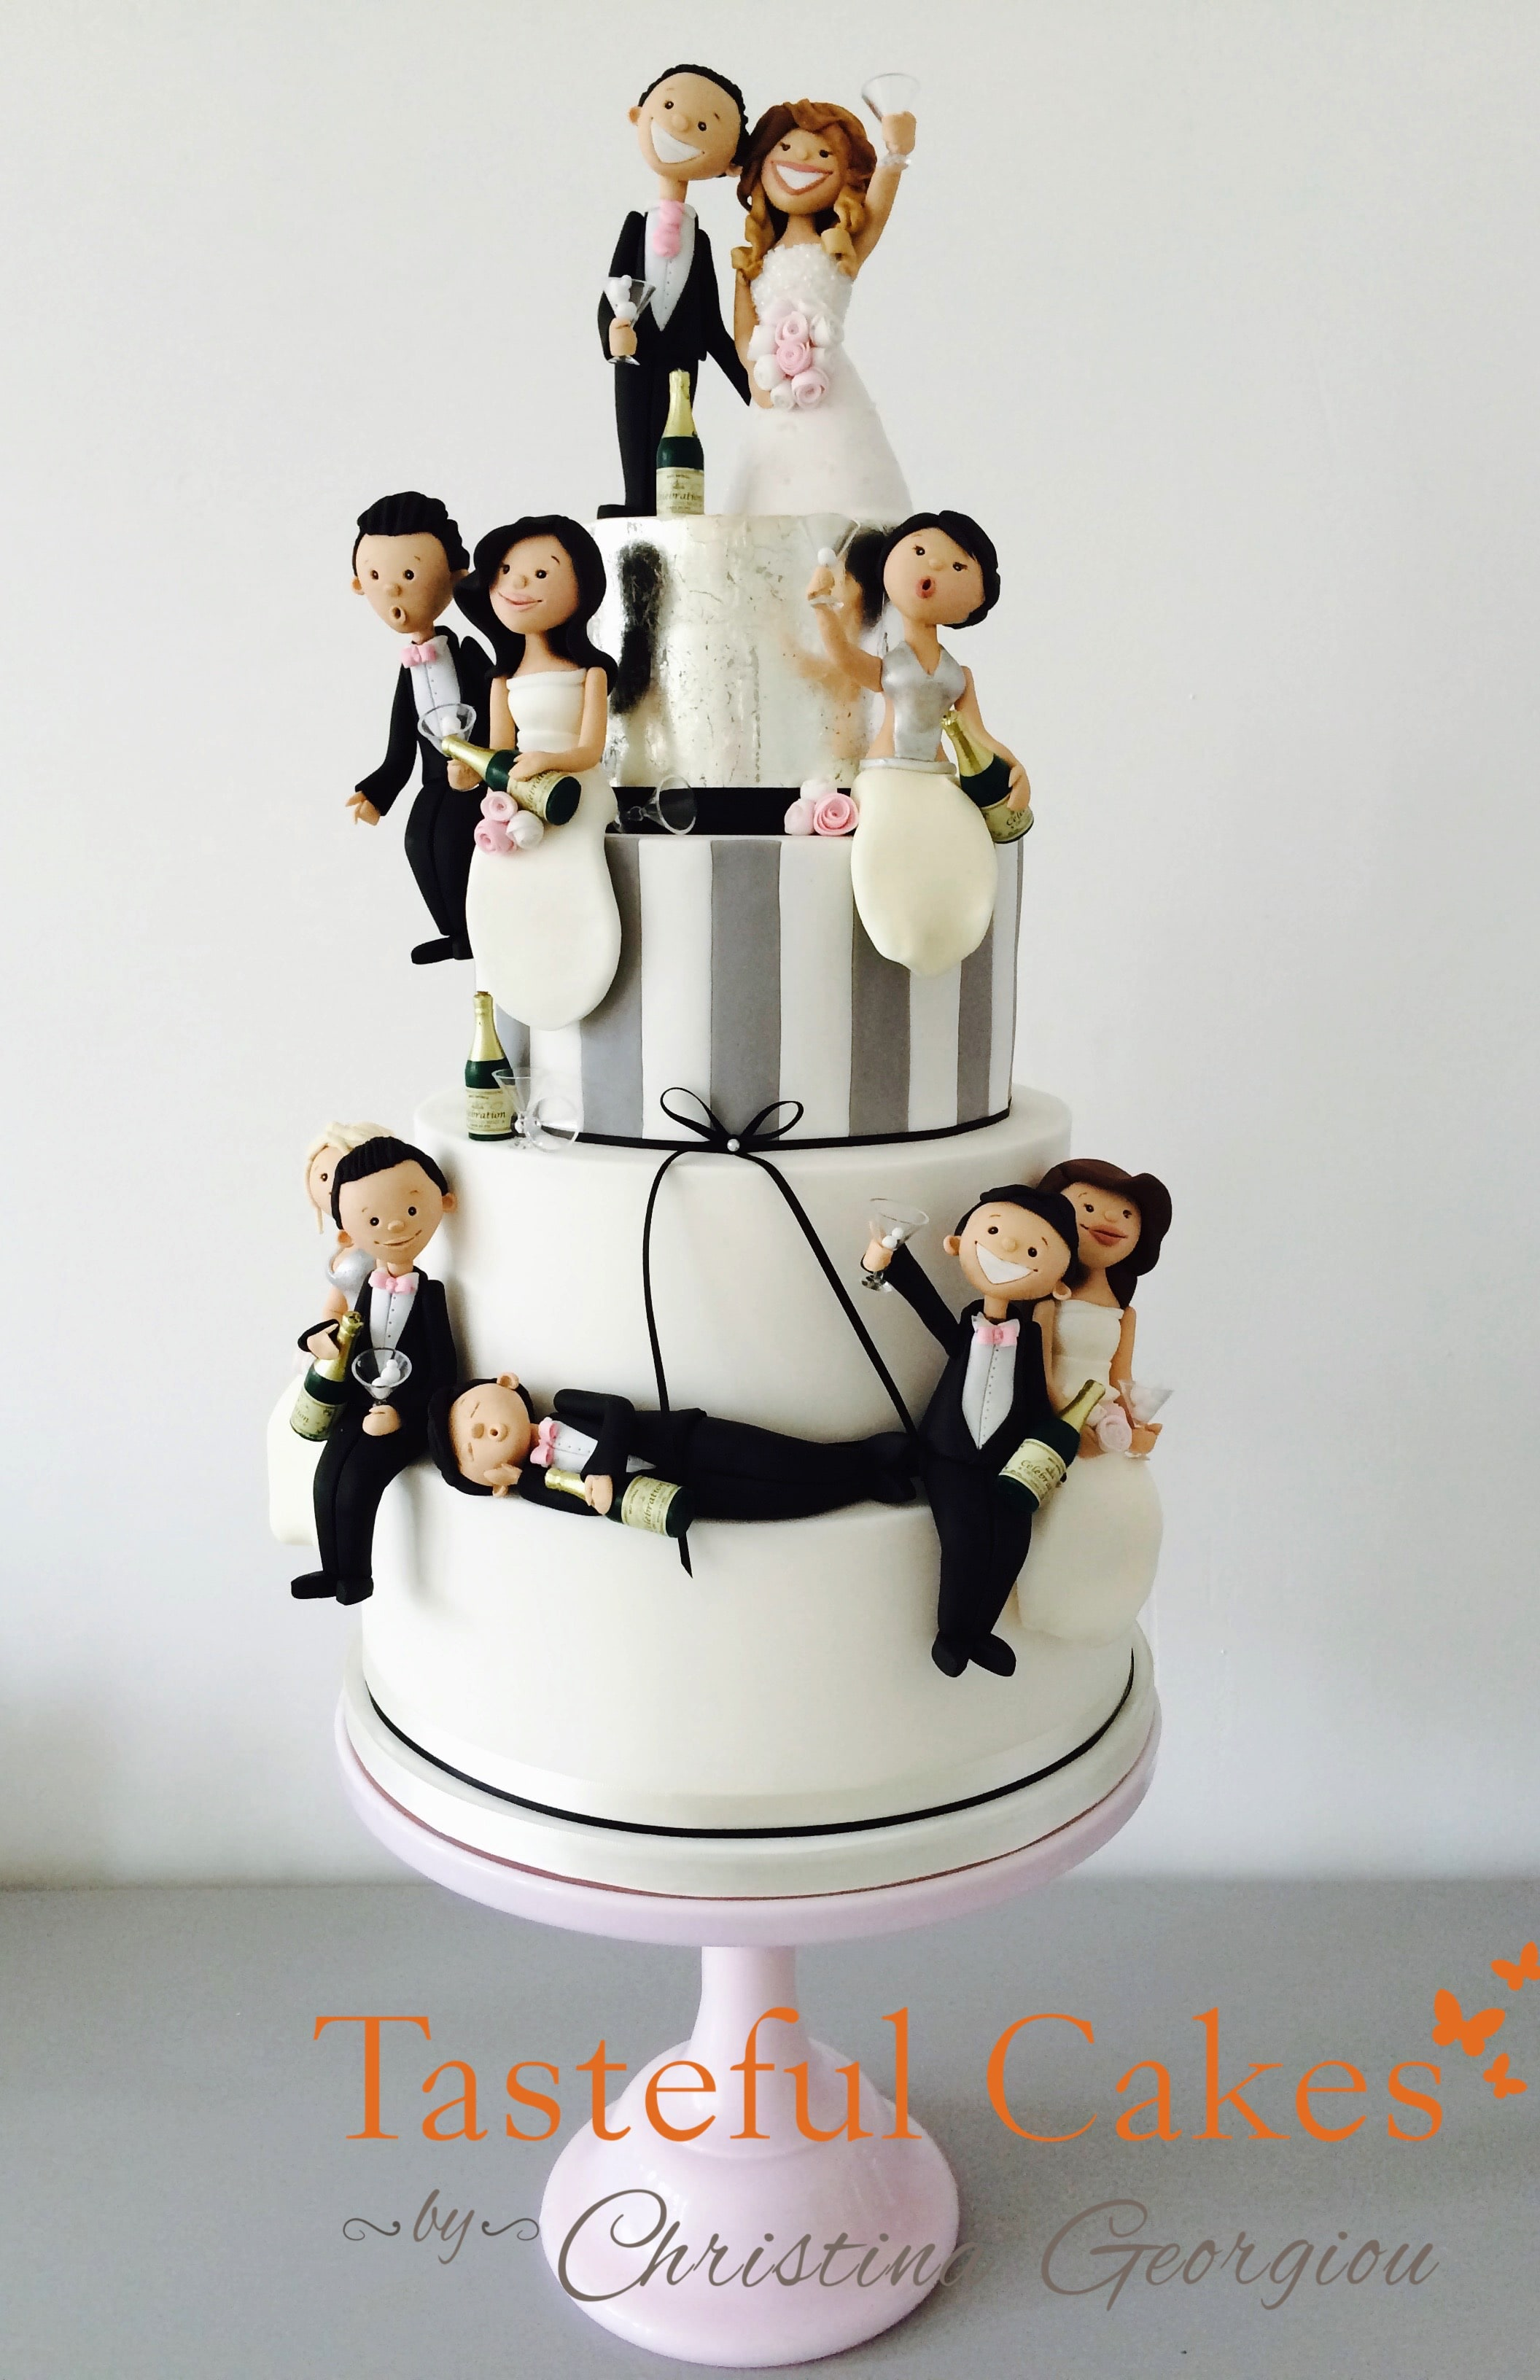 Tasteful cakes by christina georgiou funny drunk themed wedding funny wedding cake funny drunk personalised handmade bride and groom toppers caricatures junglespirit Image collections